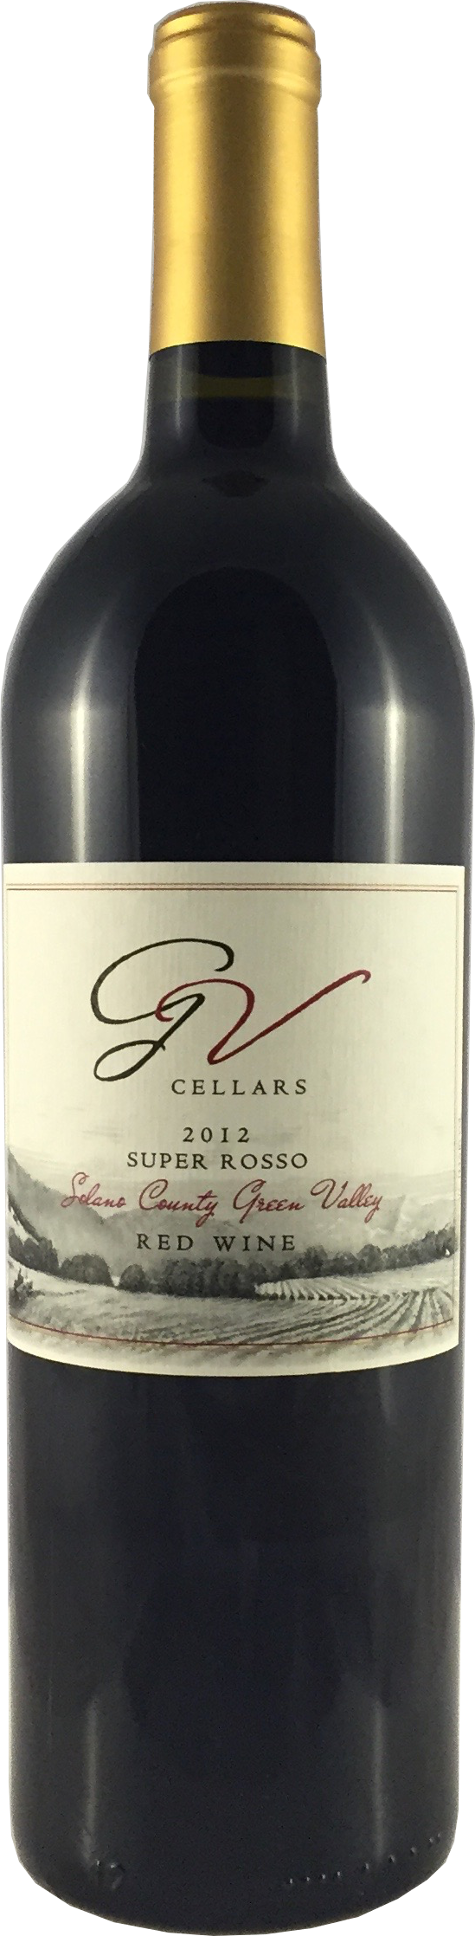 GV Cellars 2012 Super Rosso Red Blend Solano County Green Valley - Qorkz